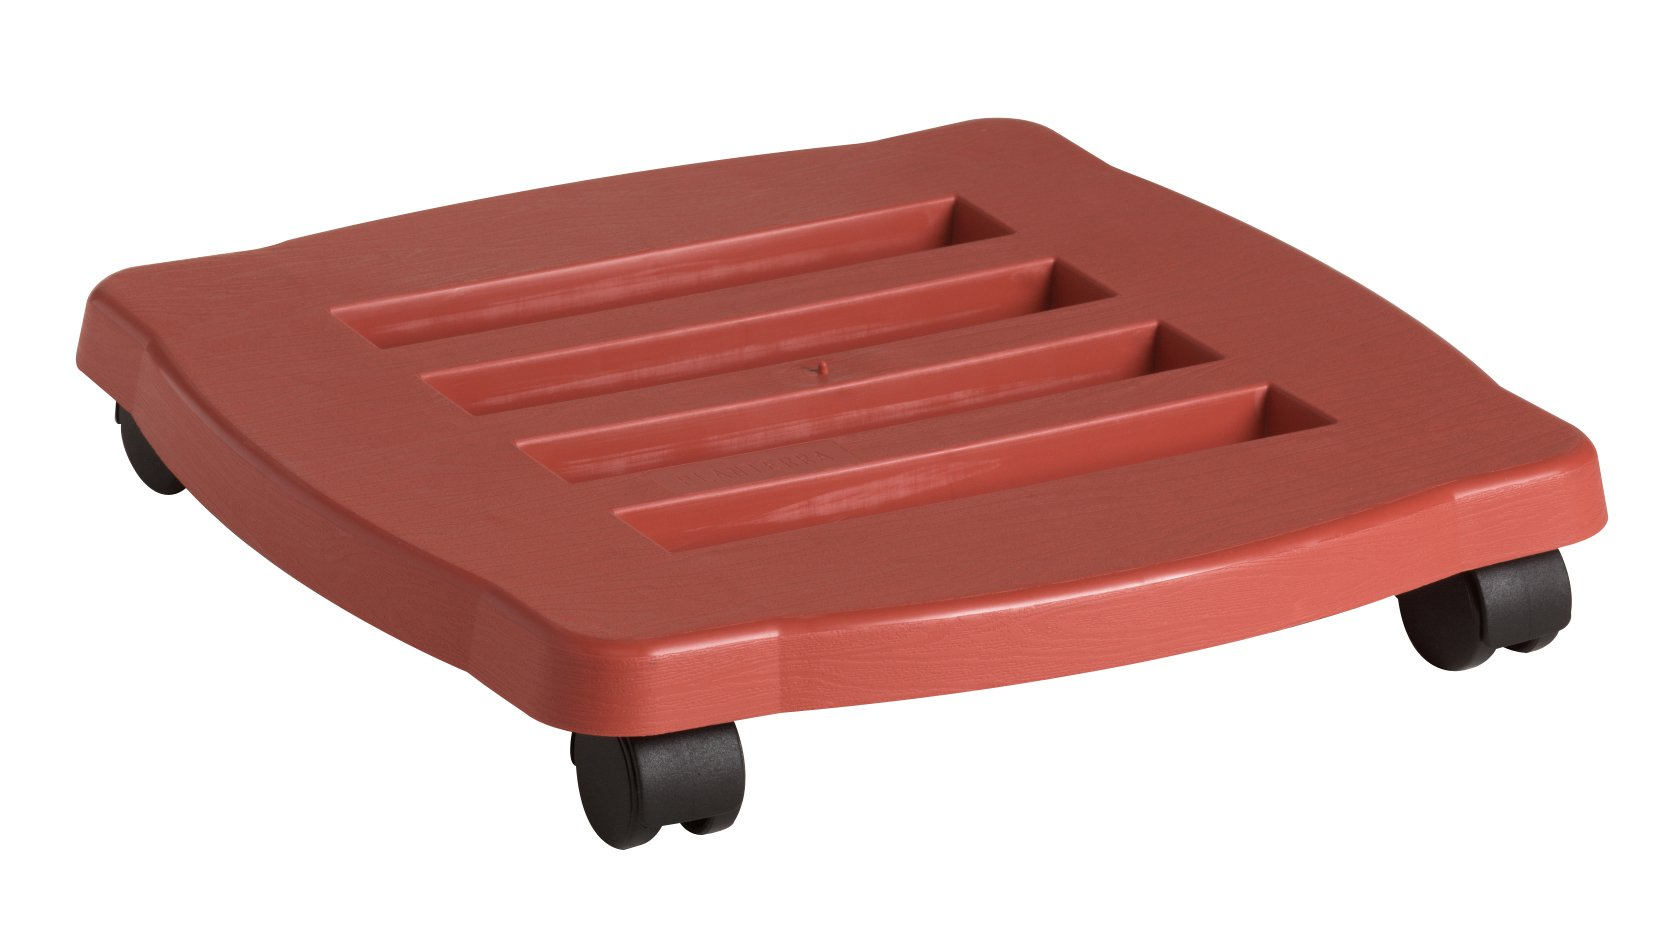 Fiskars 95125C 15-Inch Square Planter Caddy, terracotta color by Bloem